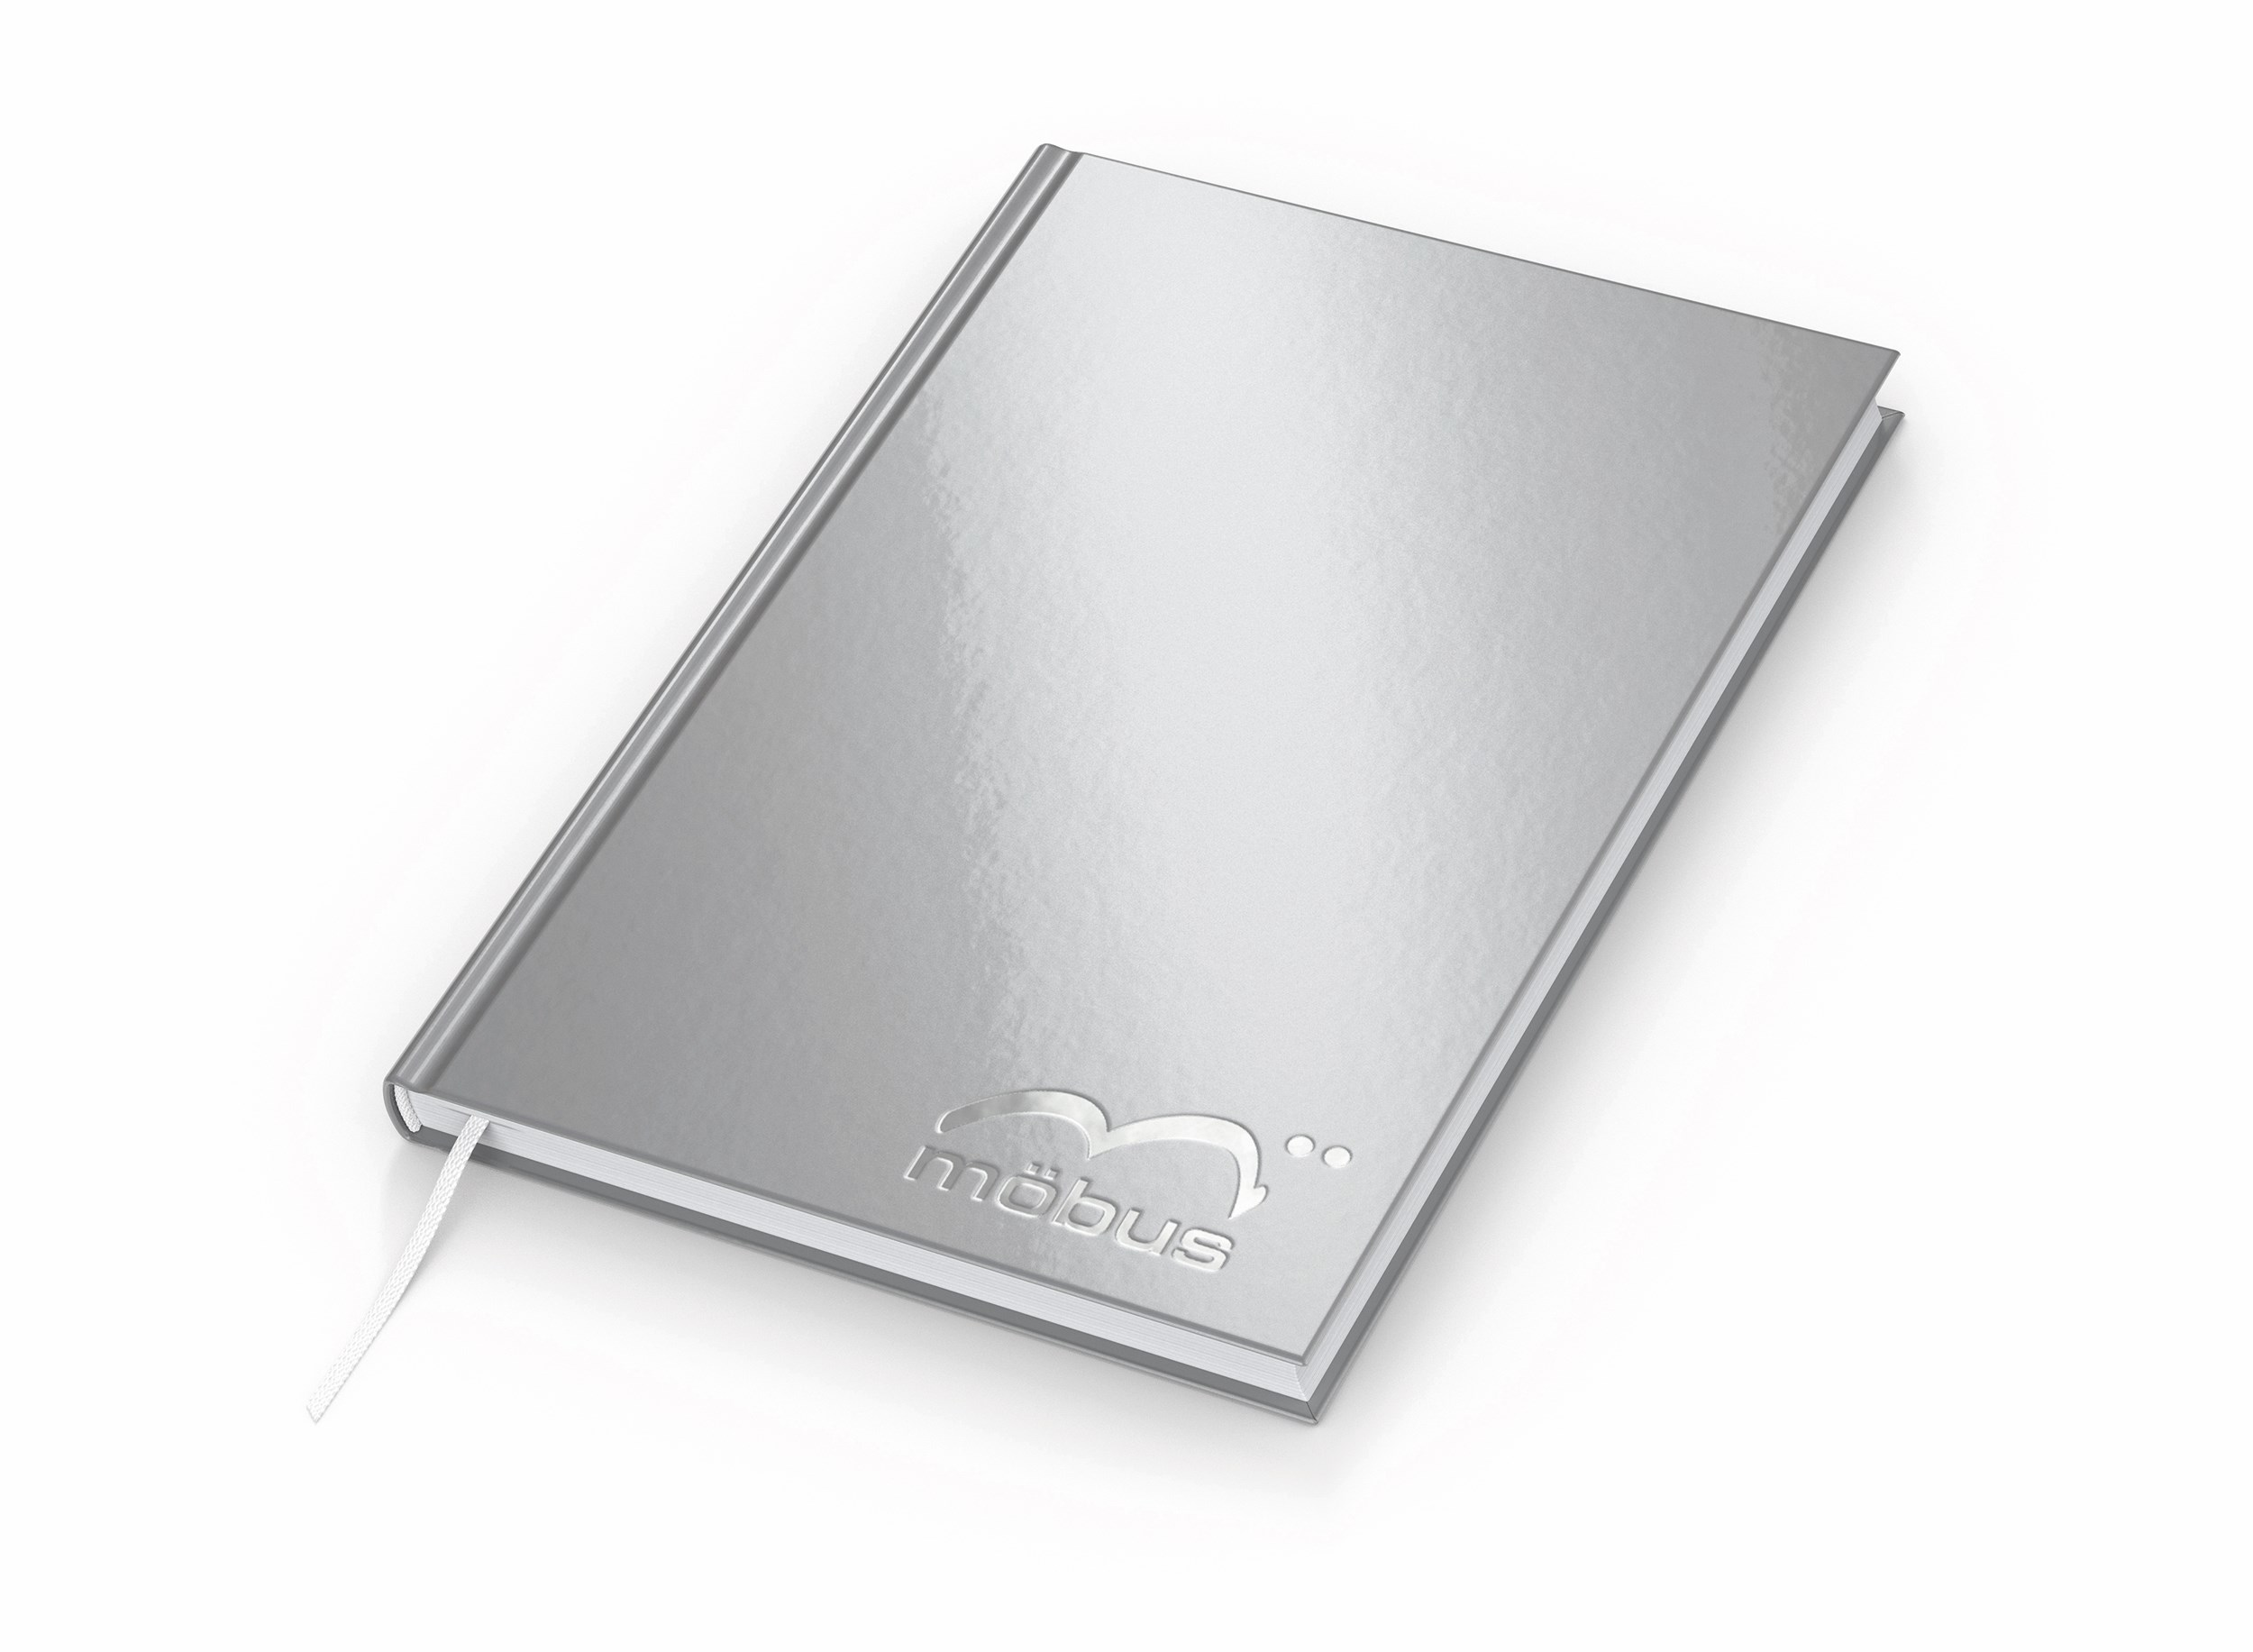 Note-Book A5 Complete Cover-Star gloss silber – Silberprägung_HR-CMYK